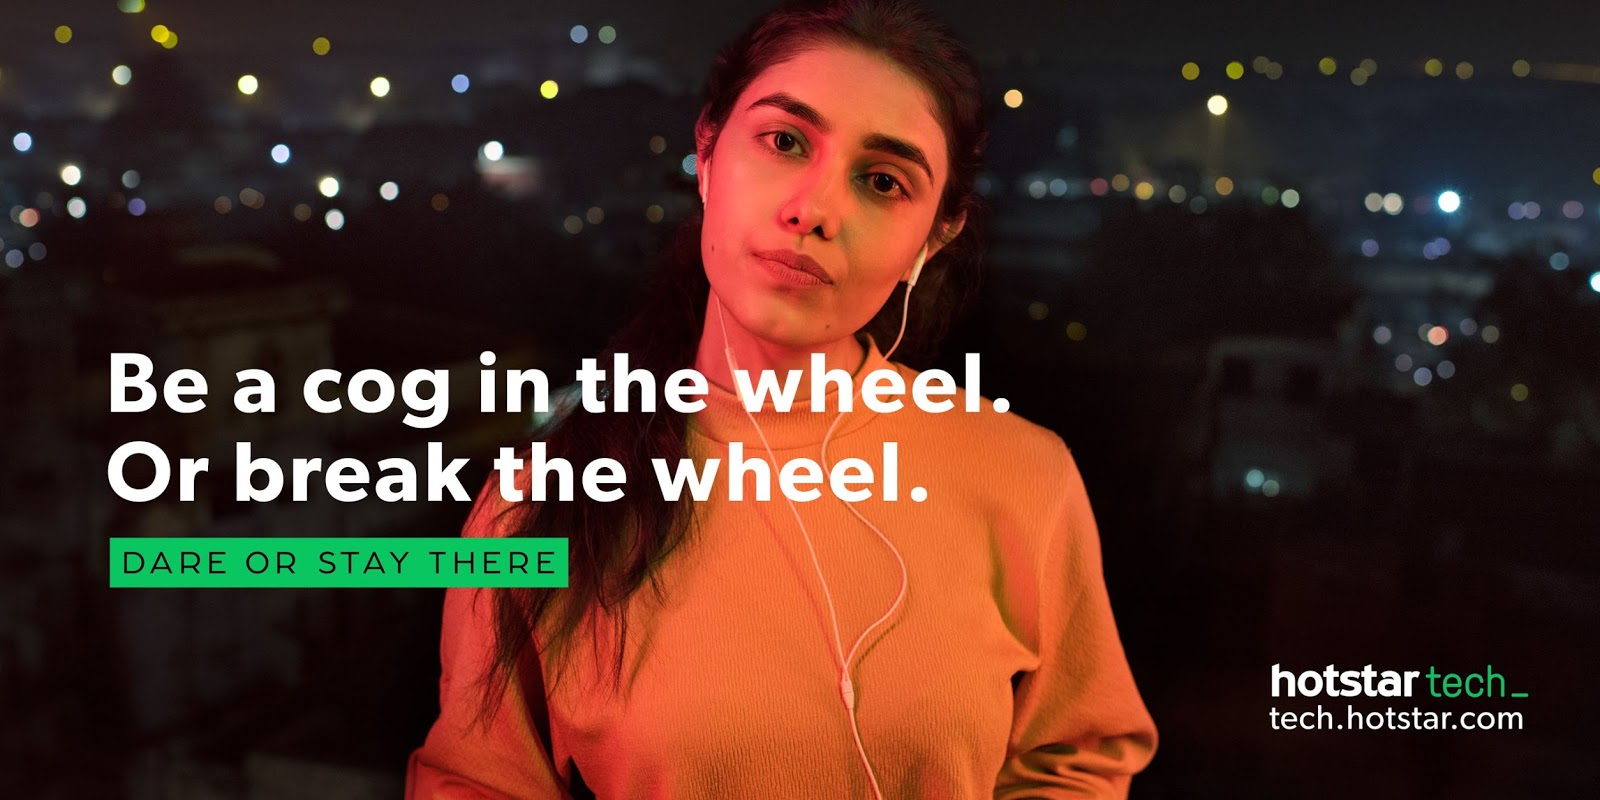 Targeting Top Technology Minds in the Country, Hotstar Launches Bold